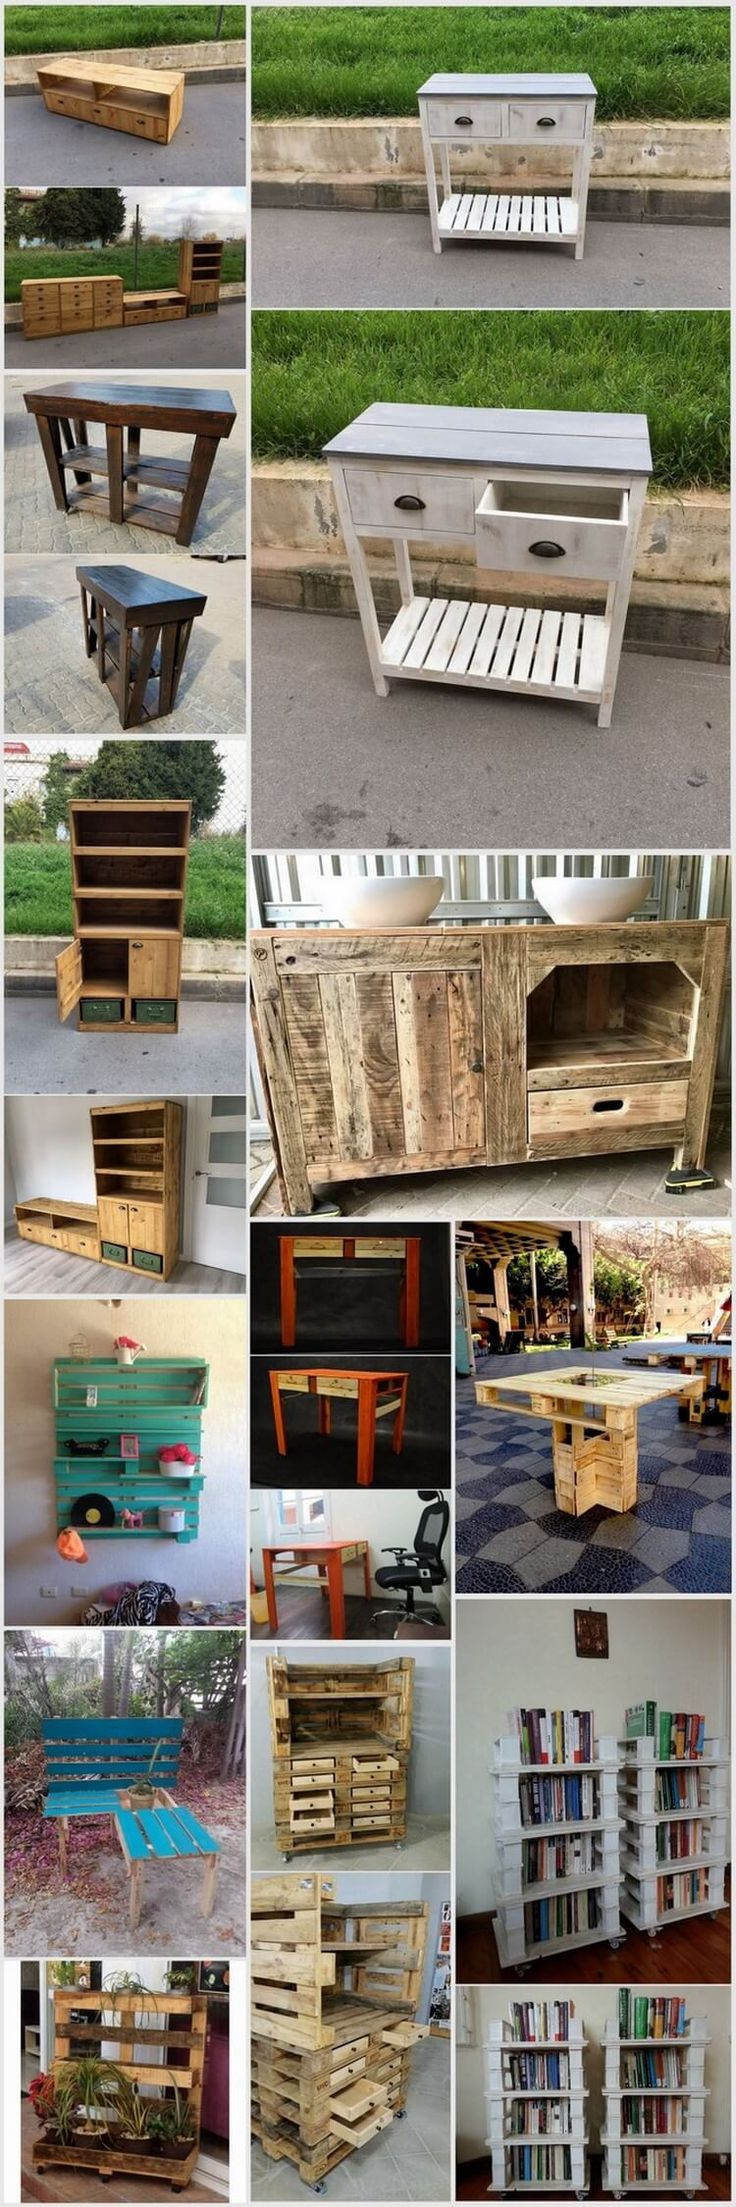 Few Ideas About Recycling Wooden Pallets